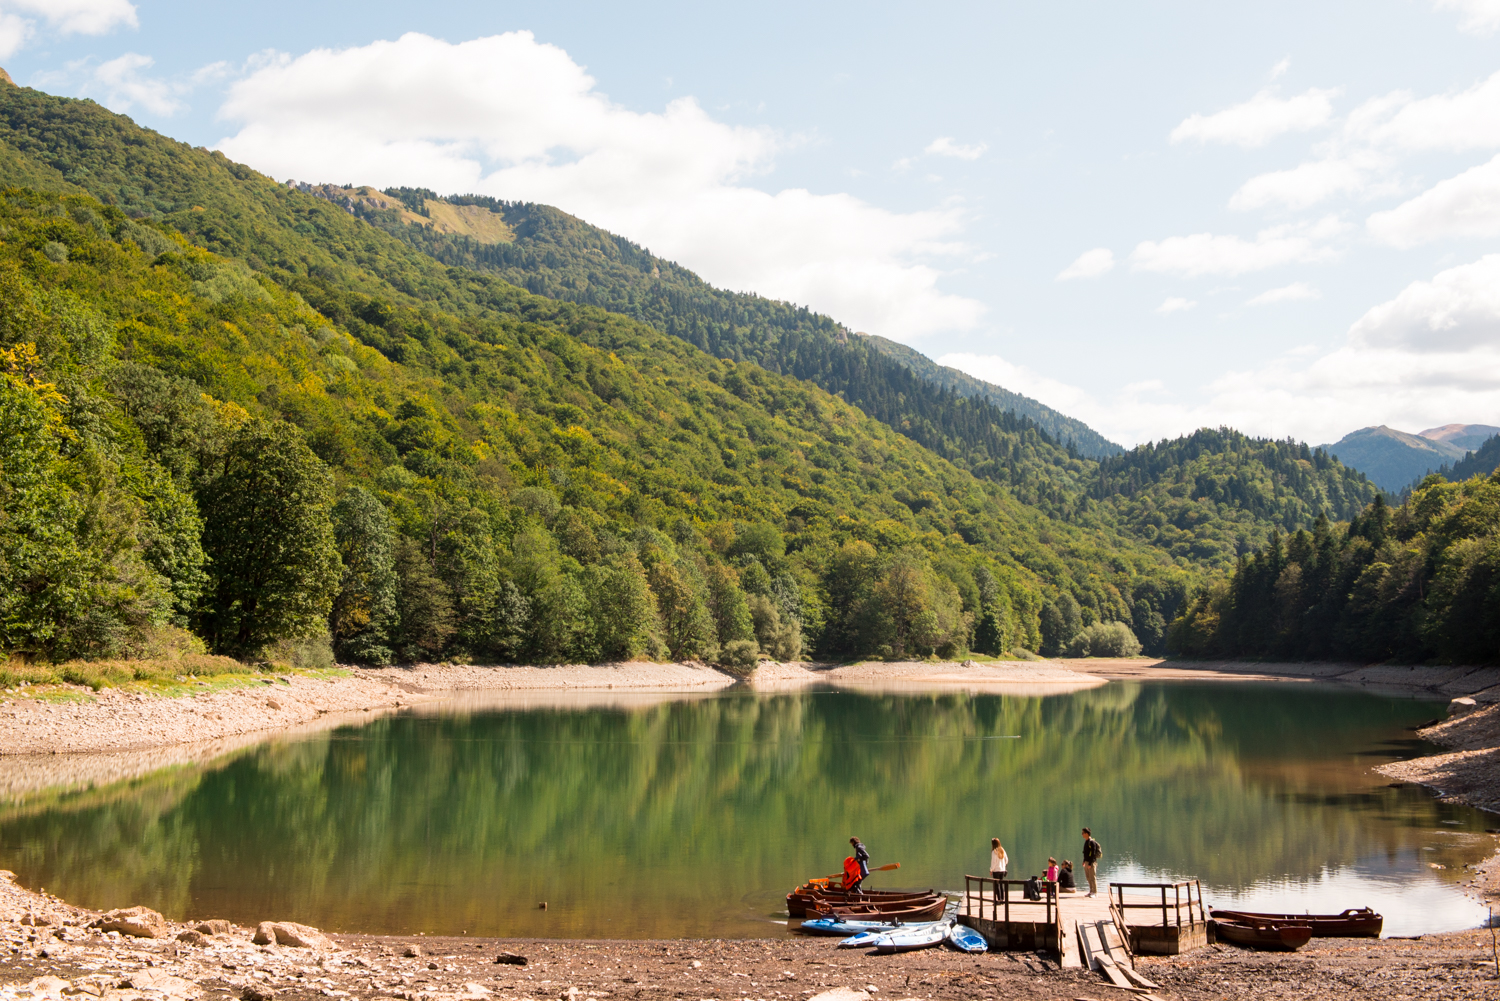 Lake at Biogradska Gora National Park